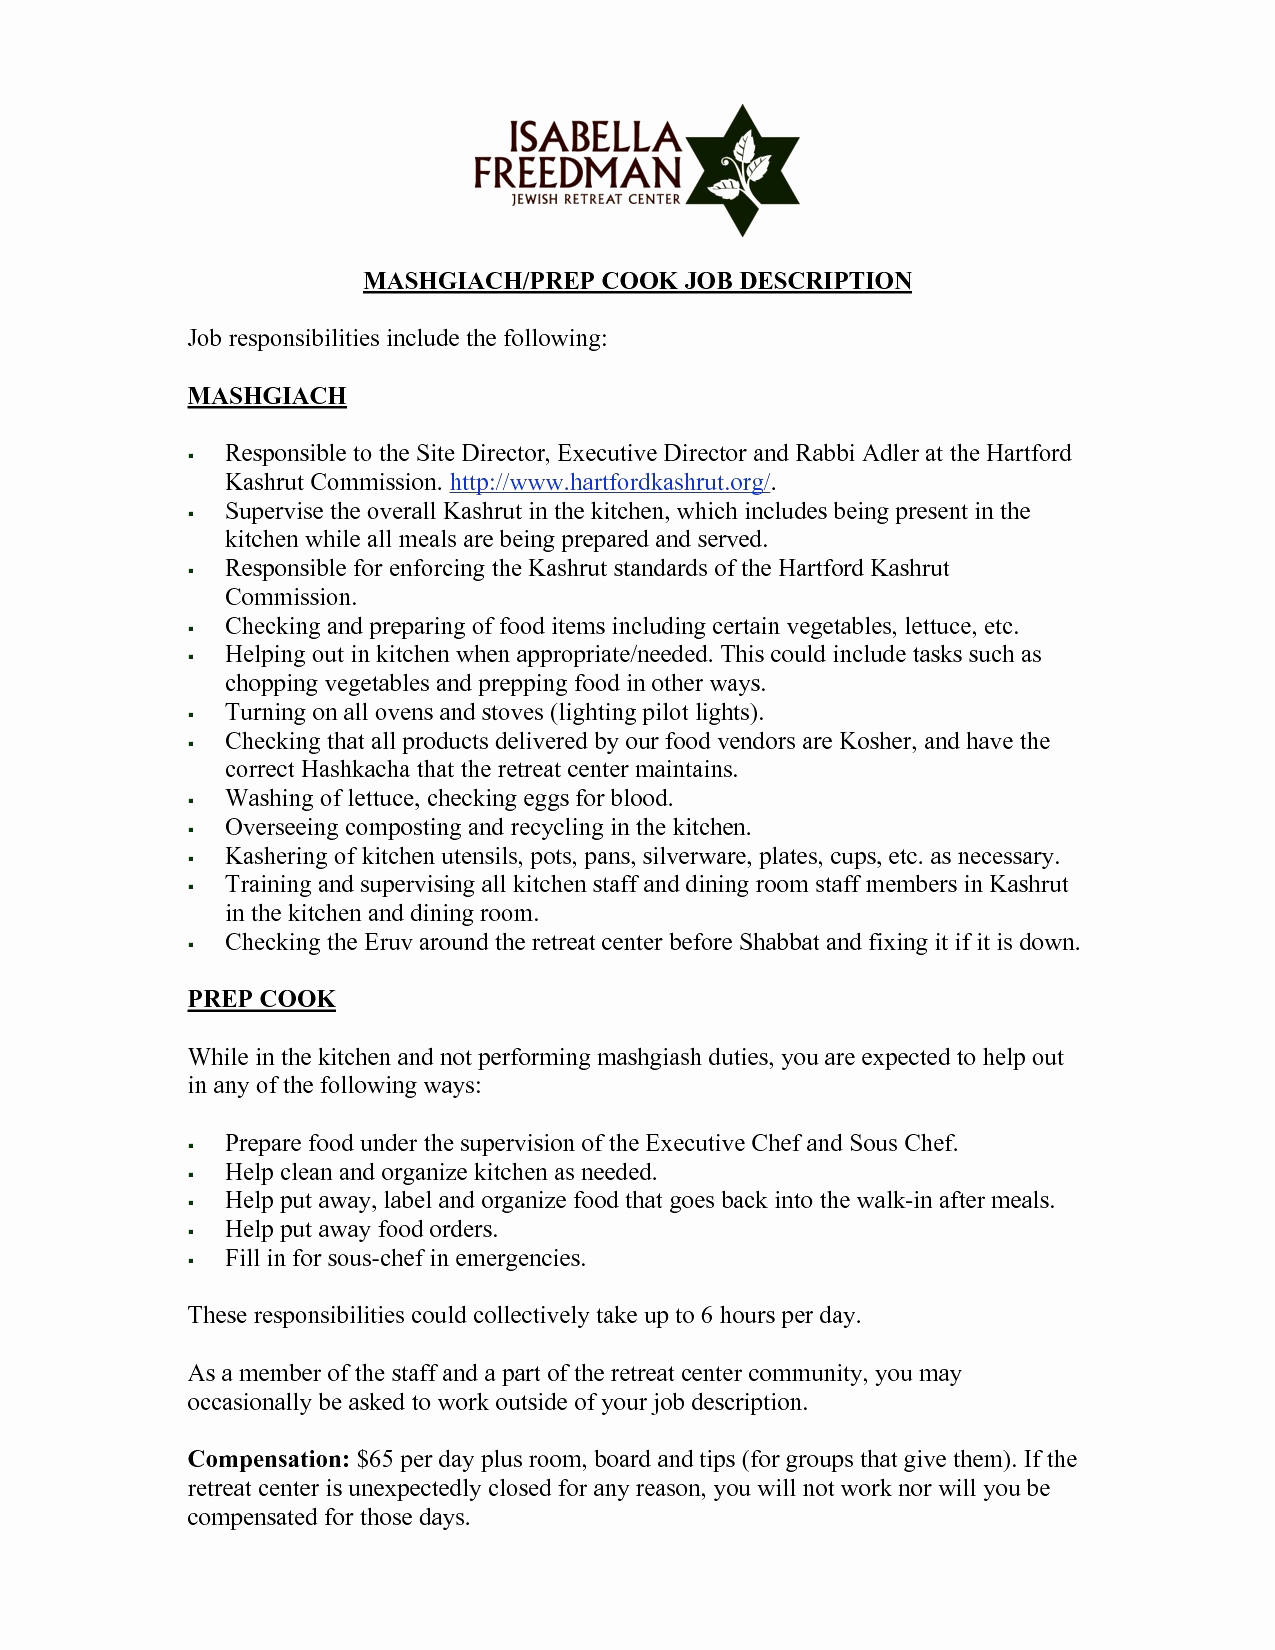 Nurses Cover Letter Template - Registered Nurse Cover Letter Examples New Resume and Cover Letter